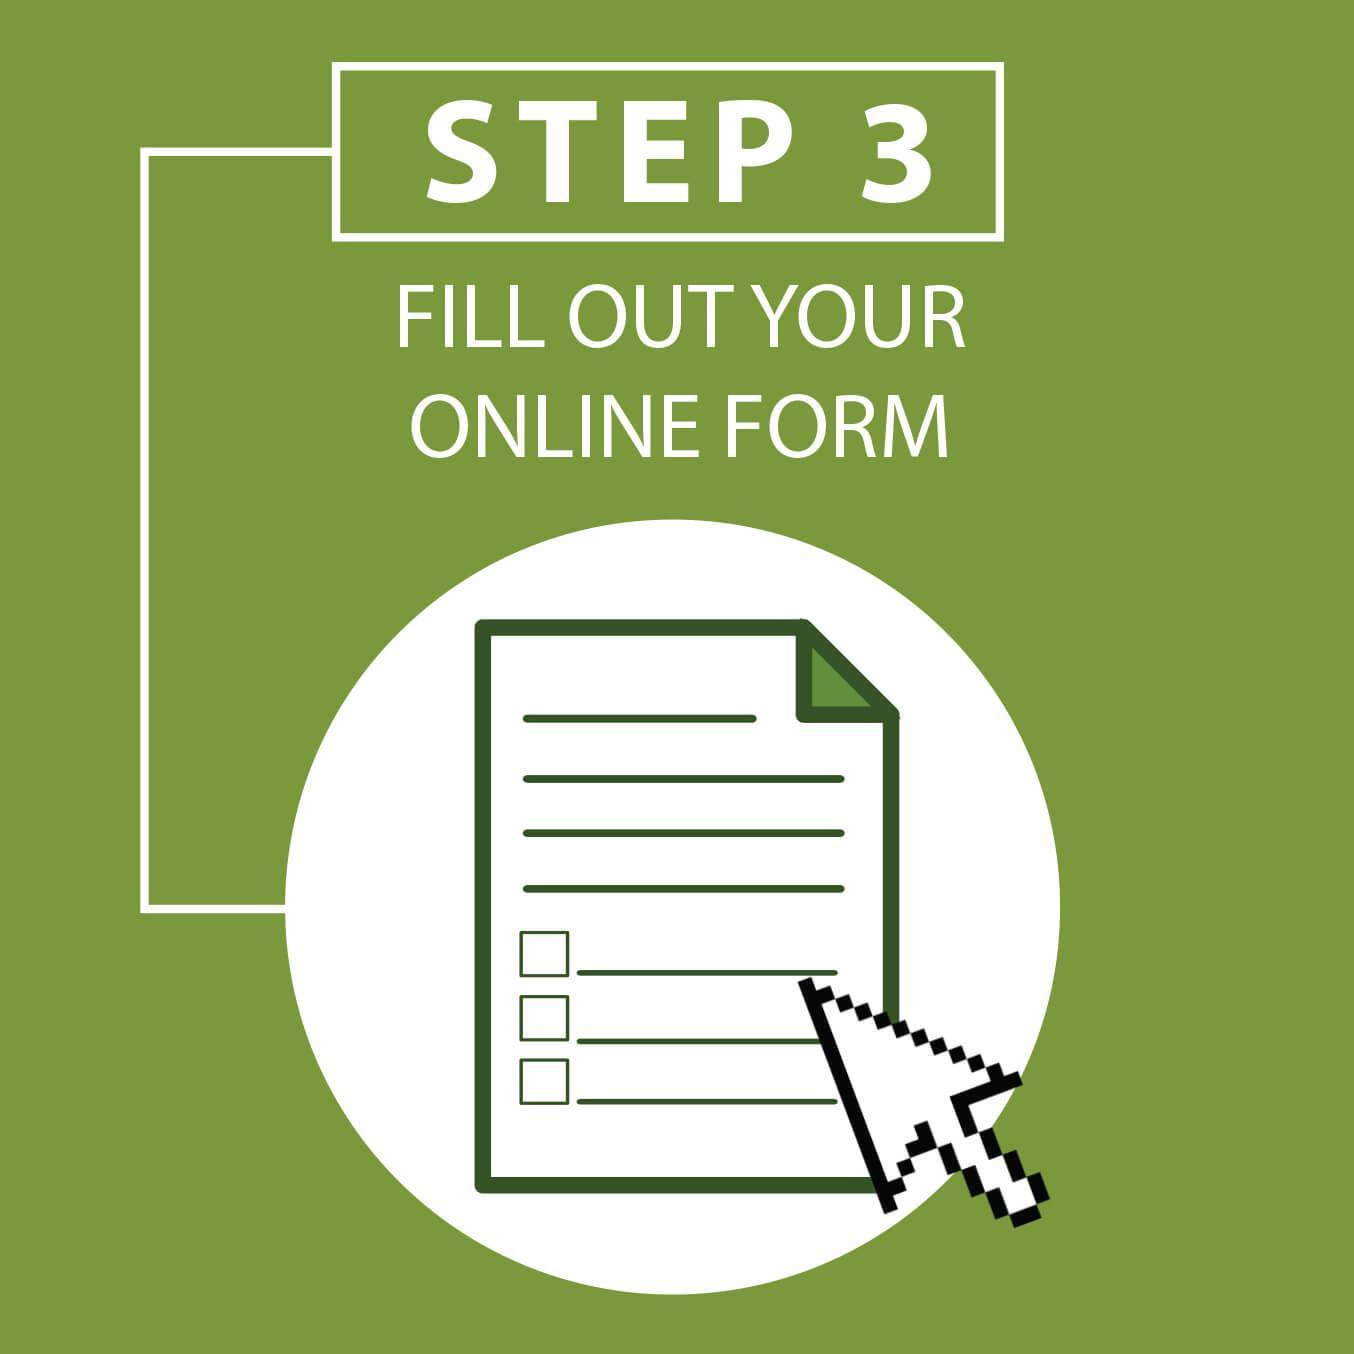 Step 3: Fill Out Your Online Form